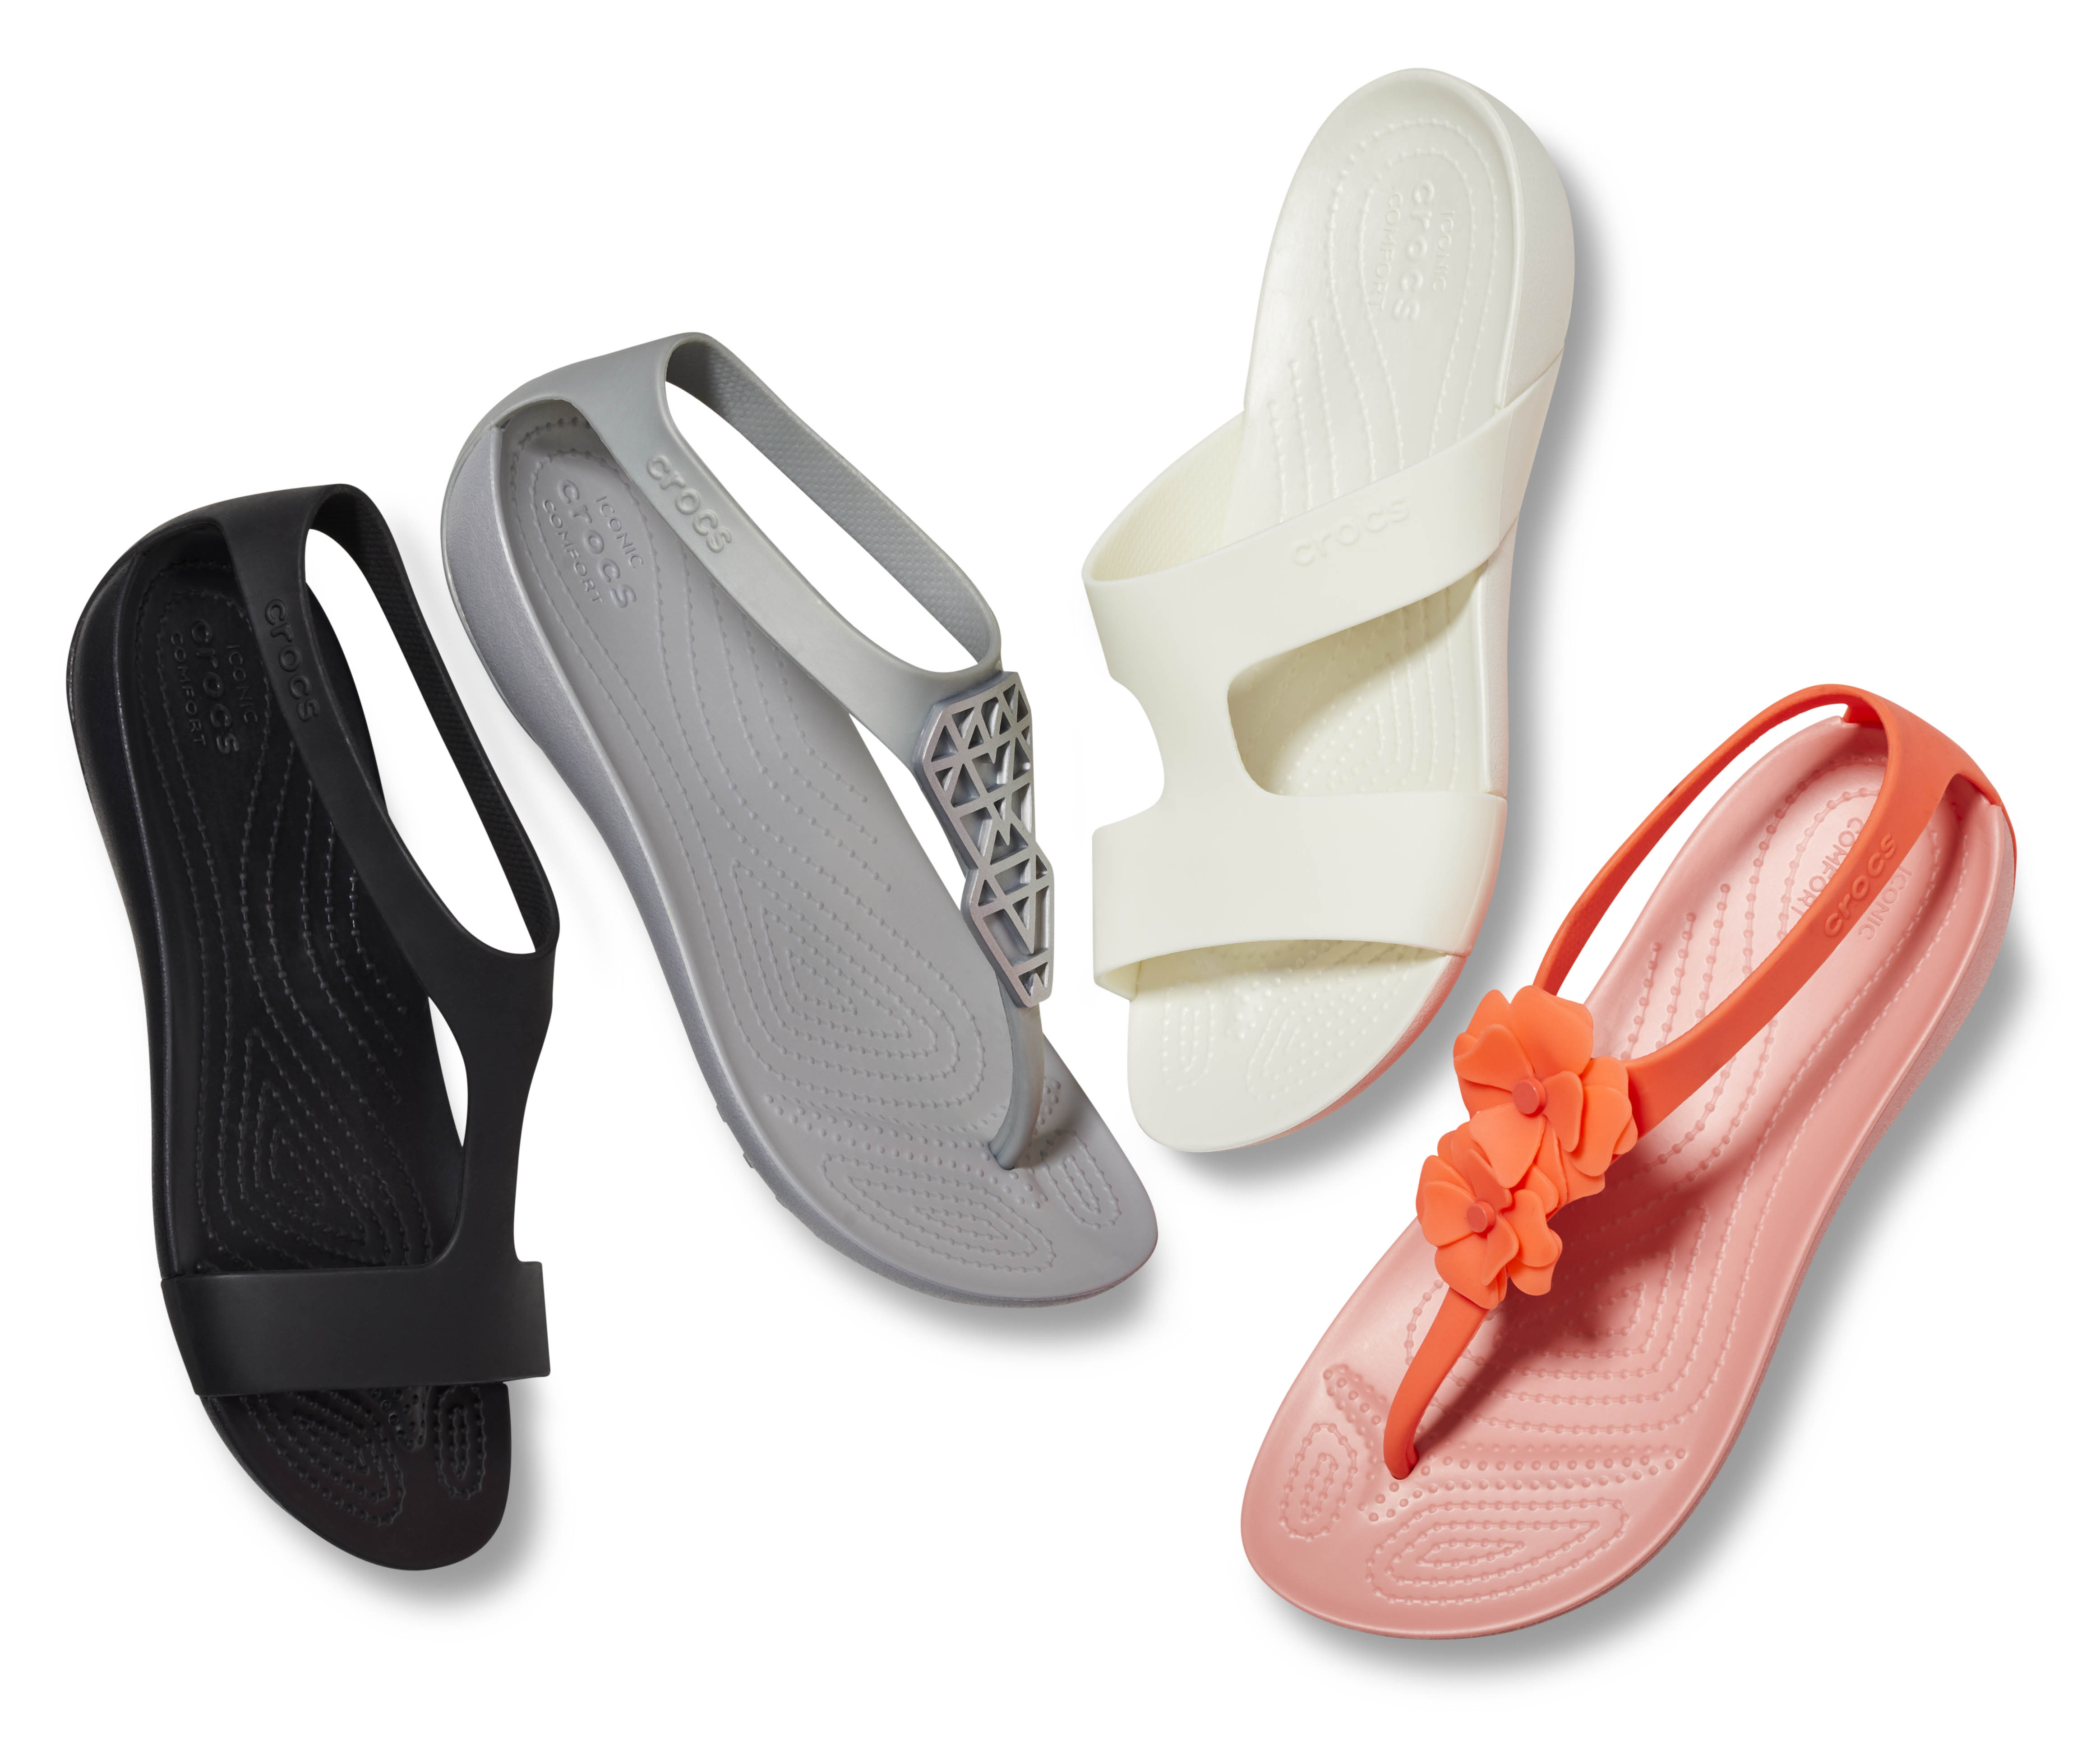 7c6f565e8 Crocs Serena collection is now available in a variety of sandals ...